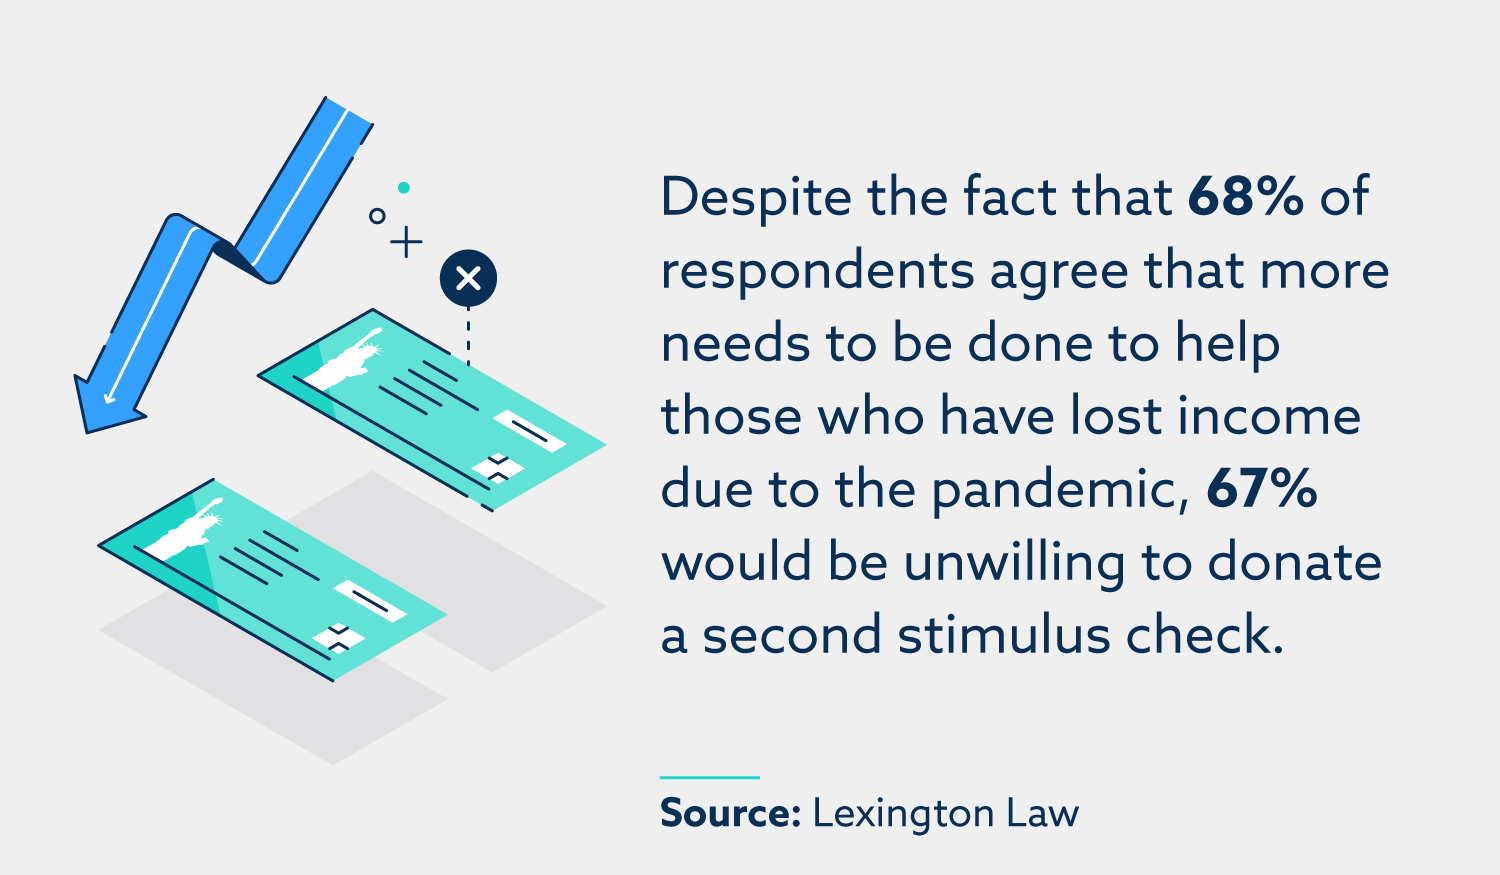 Despite the fact that 68% of respondents agree that more needs to be done to help those who have lost income due to the pandemic, 67% would be unwilling to donate a second stimulus check.